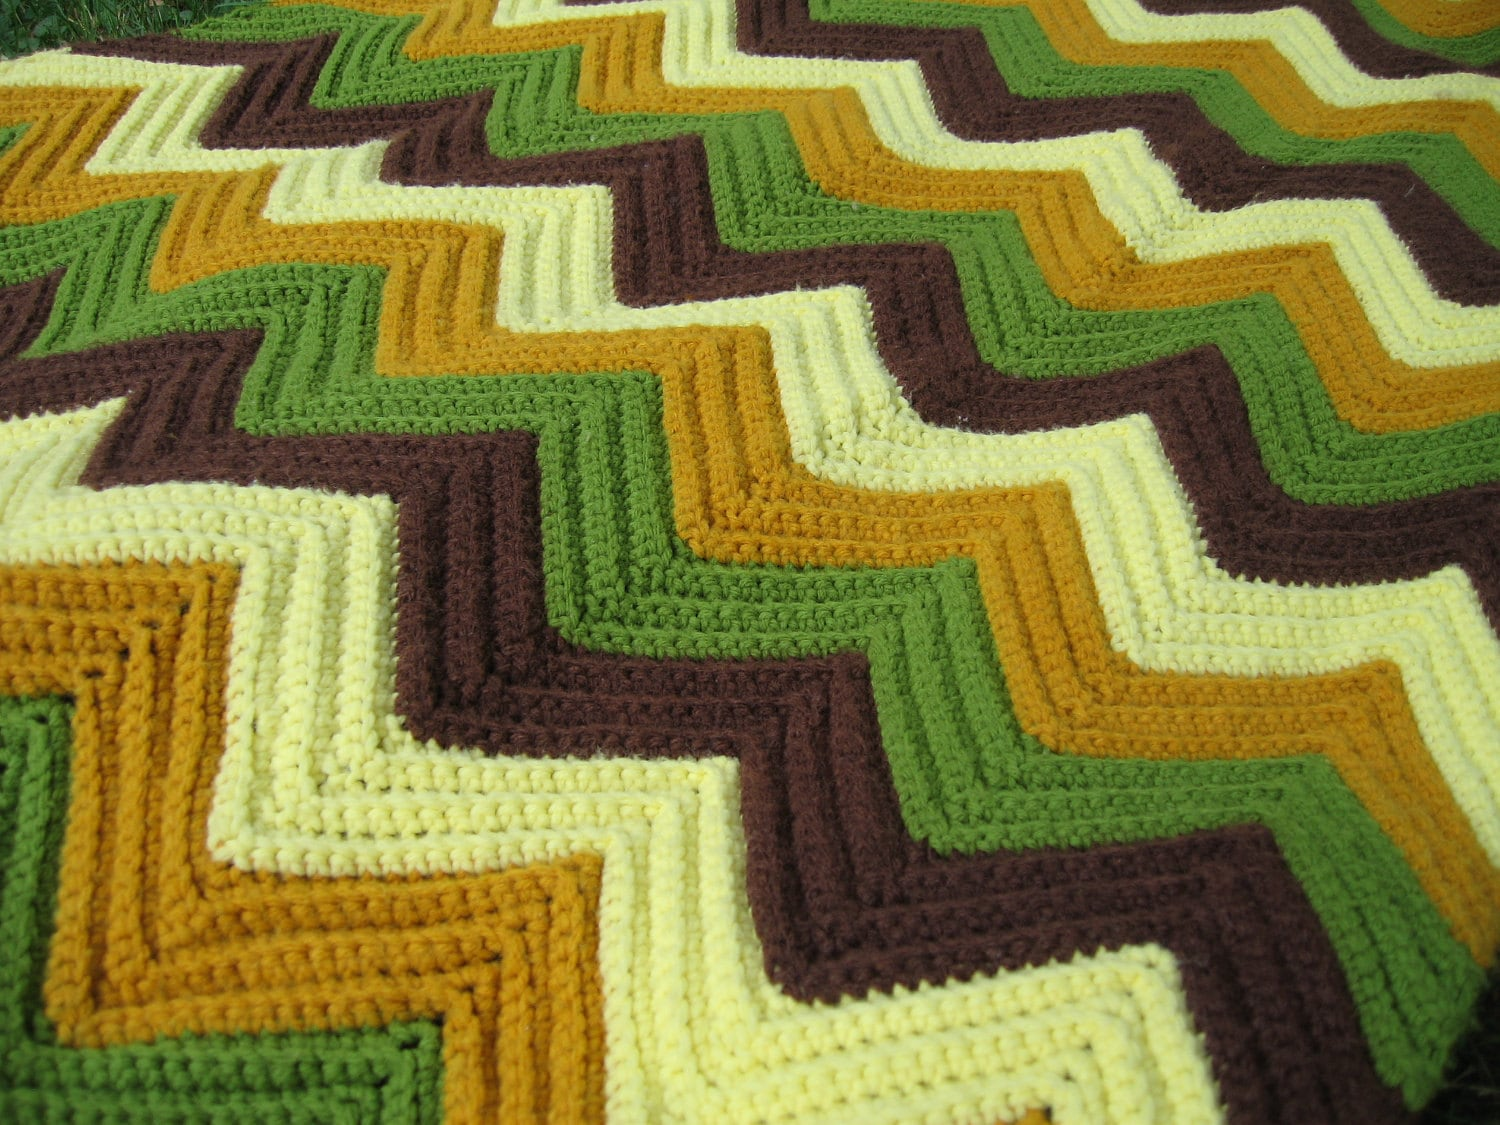 Zigzag Crochet Pattern Best Inspiration Design